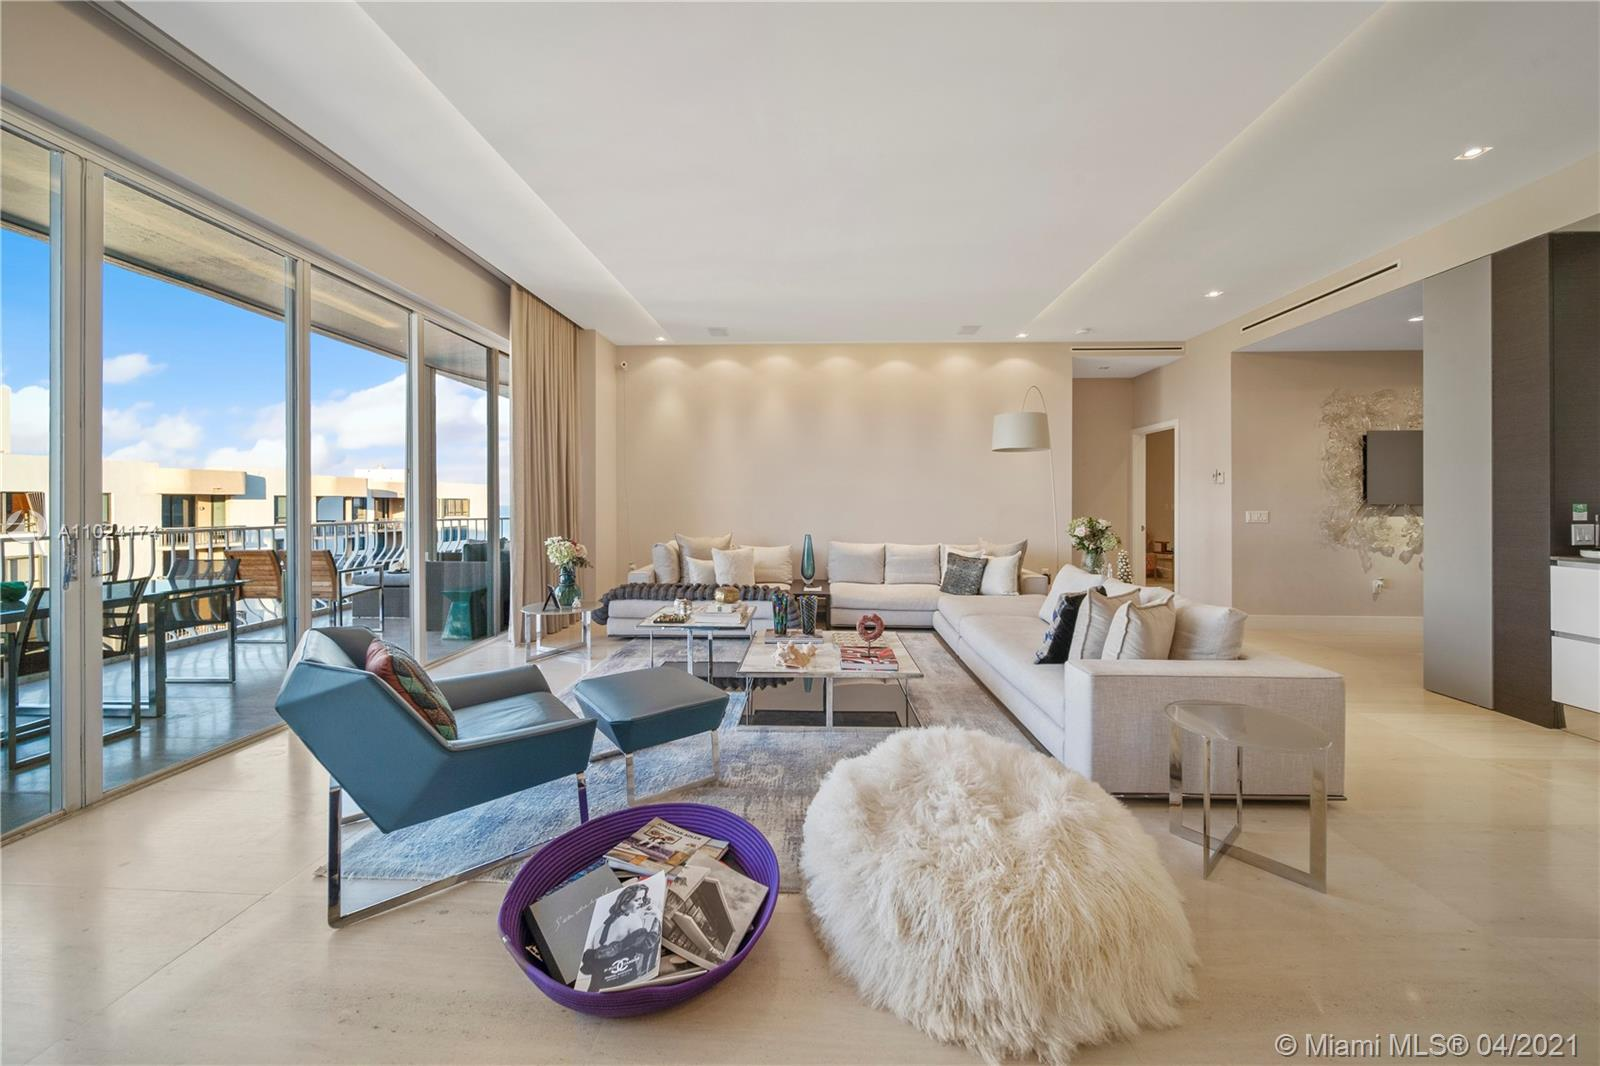 ABOUT THIS ONE OF A KIND L-PH unit. With spectacular horizons from ocean to Intracoastal views, this L-Penthouse located on the most desirable zip code, provides a true layout designed by renowned architect in Brazil. This is for sure, a very unique unit that features 4 bedrooms and 4 baths in addition to well-apportioned dining and living areas. With a limestone flooring throughout the unit, spacious Kitchen equipped with Molteni & C | Dada, Miele appliances, automated window treatments and all bathrooms finishes from Hansgrooe by famous Italian designer Patricia Urquiola. You can't miss this opportunity to enjoy a breathtaking taken sunset view, over the beautiful Bal Harbor Marina. Full service building, private restaurant, tennis court, clubroom and a full gym. **partially furnished**